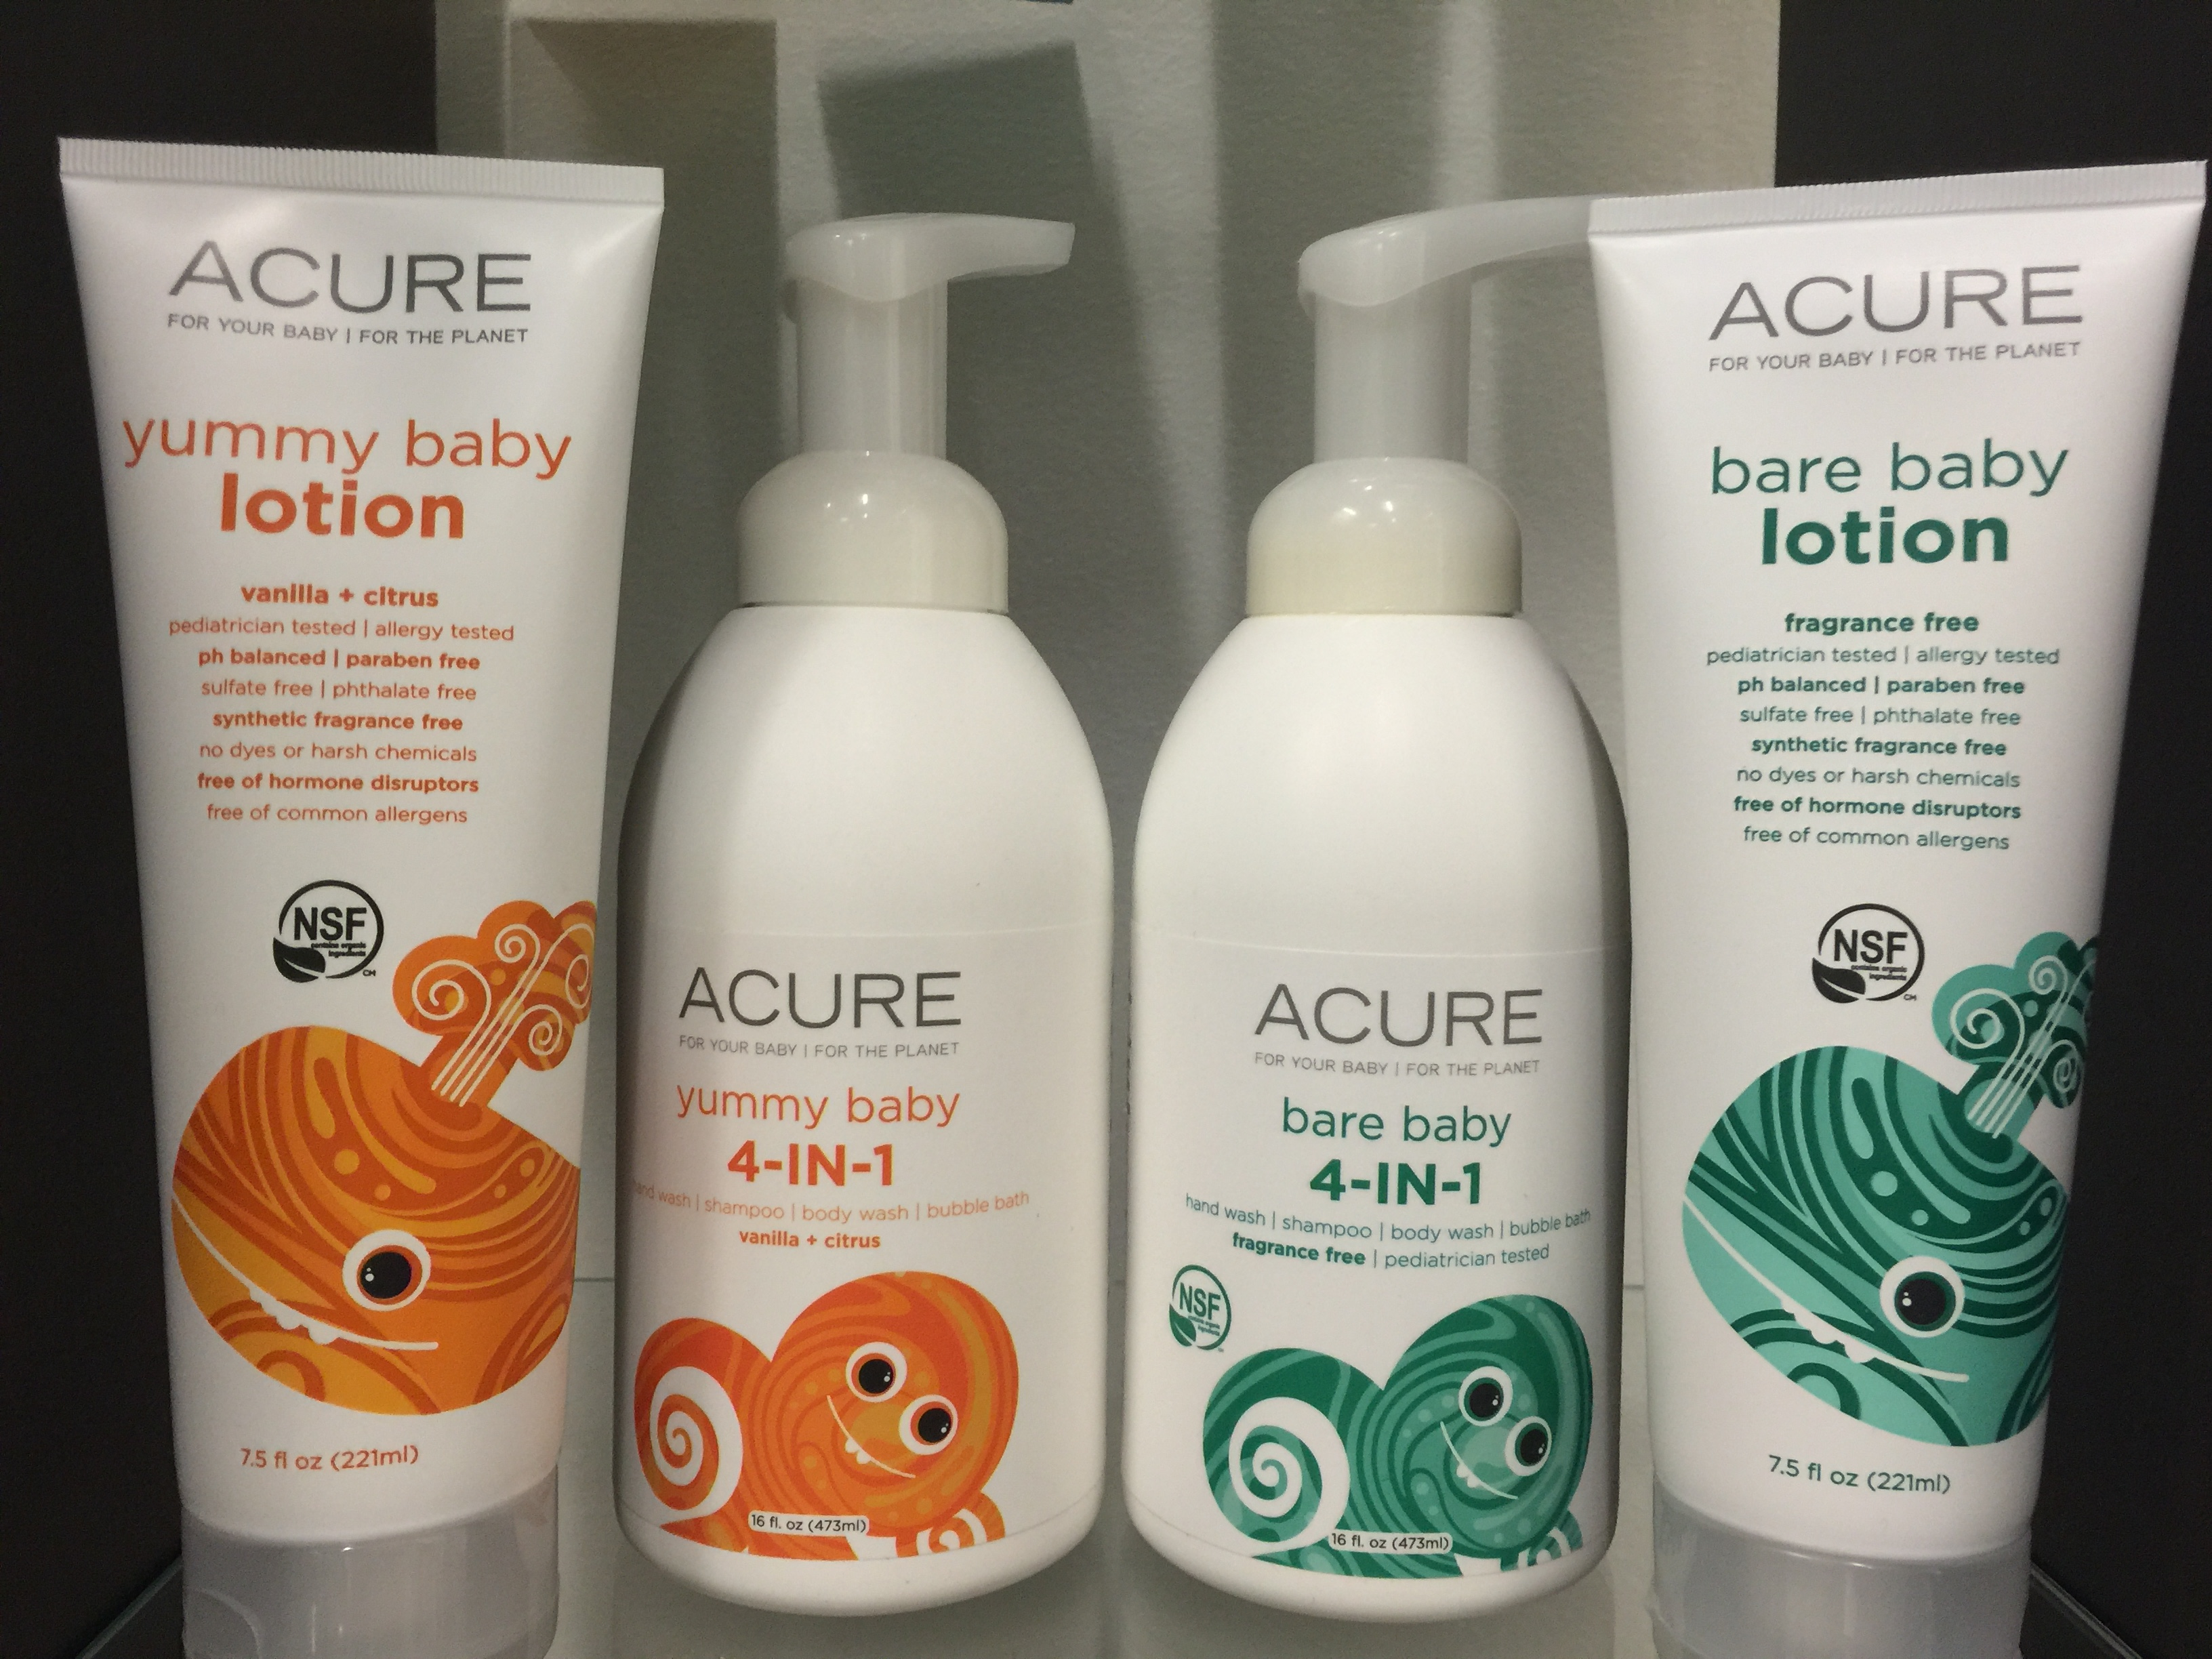 Acure Organics Launches New Baby Line – And You'll Want to Try It, Too!